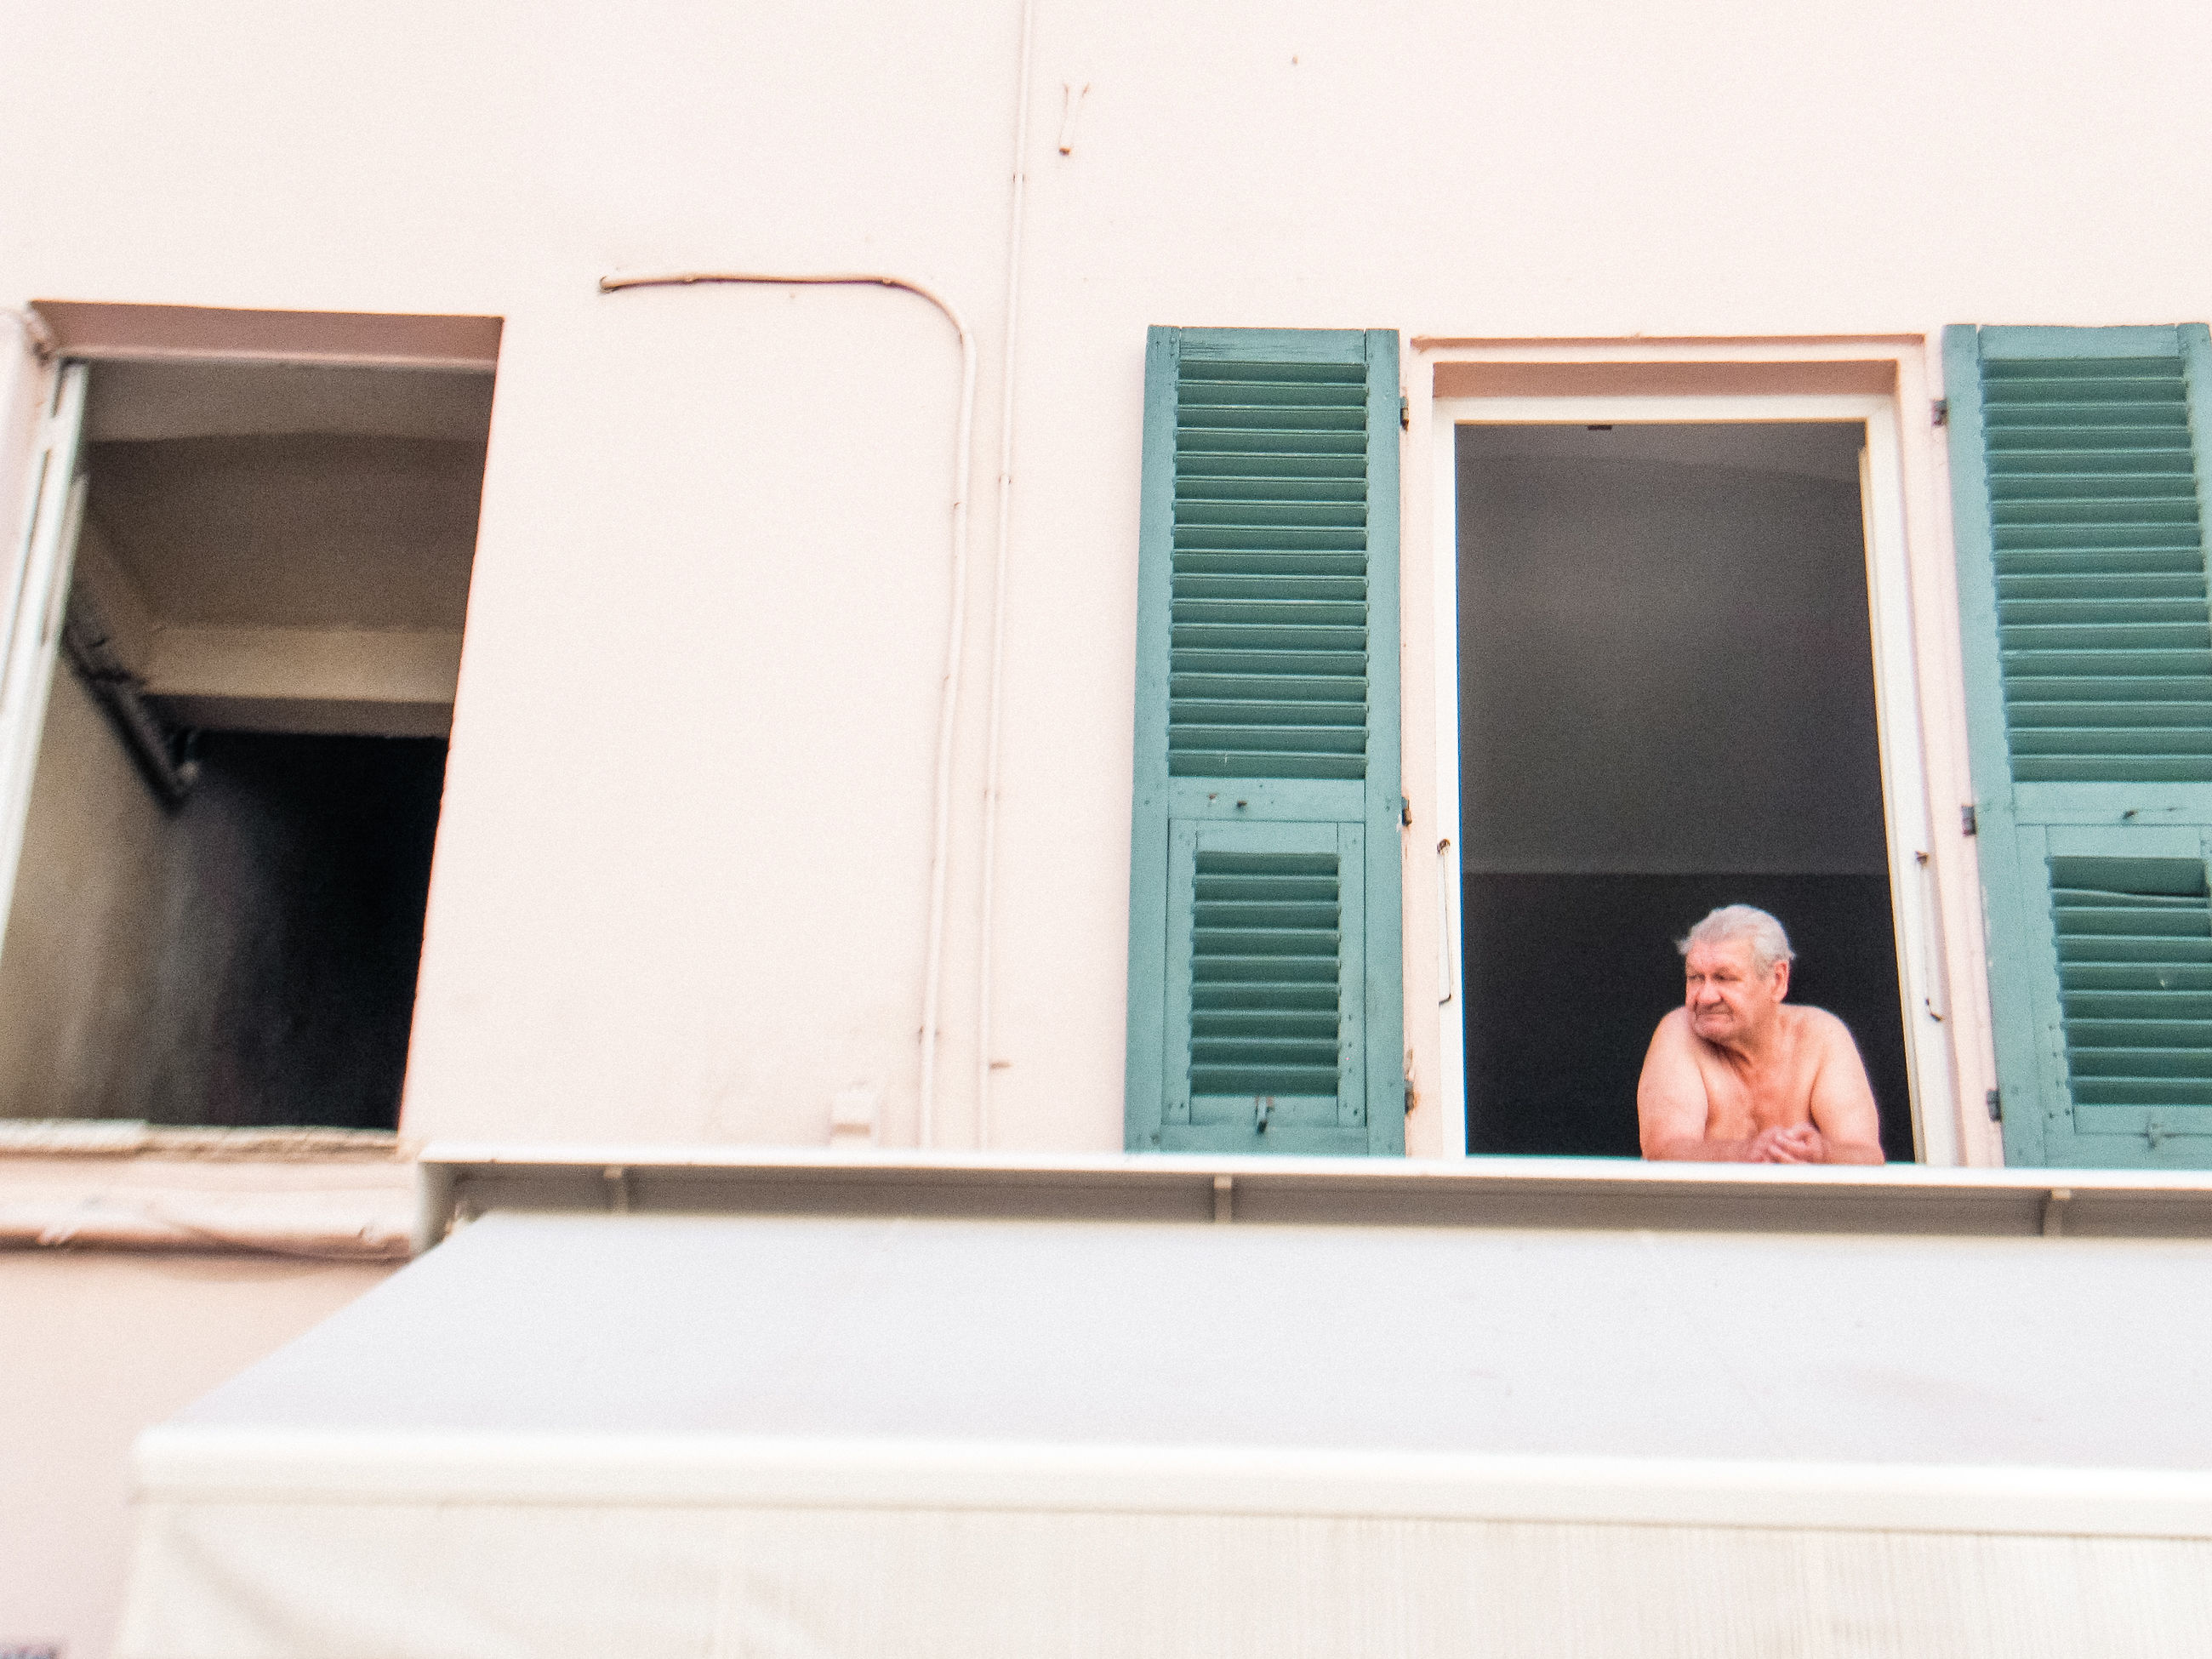 one person, real people, window, architecture, lifestyles, males, leisure activity, headshot, men, low angle view, relaxation, adult, built structure, day, portrait, front view, building exterior, looking, outdoors, mature men, contemplation